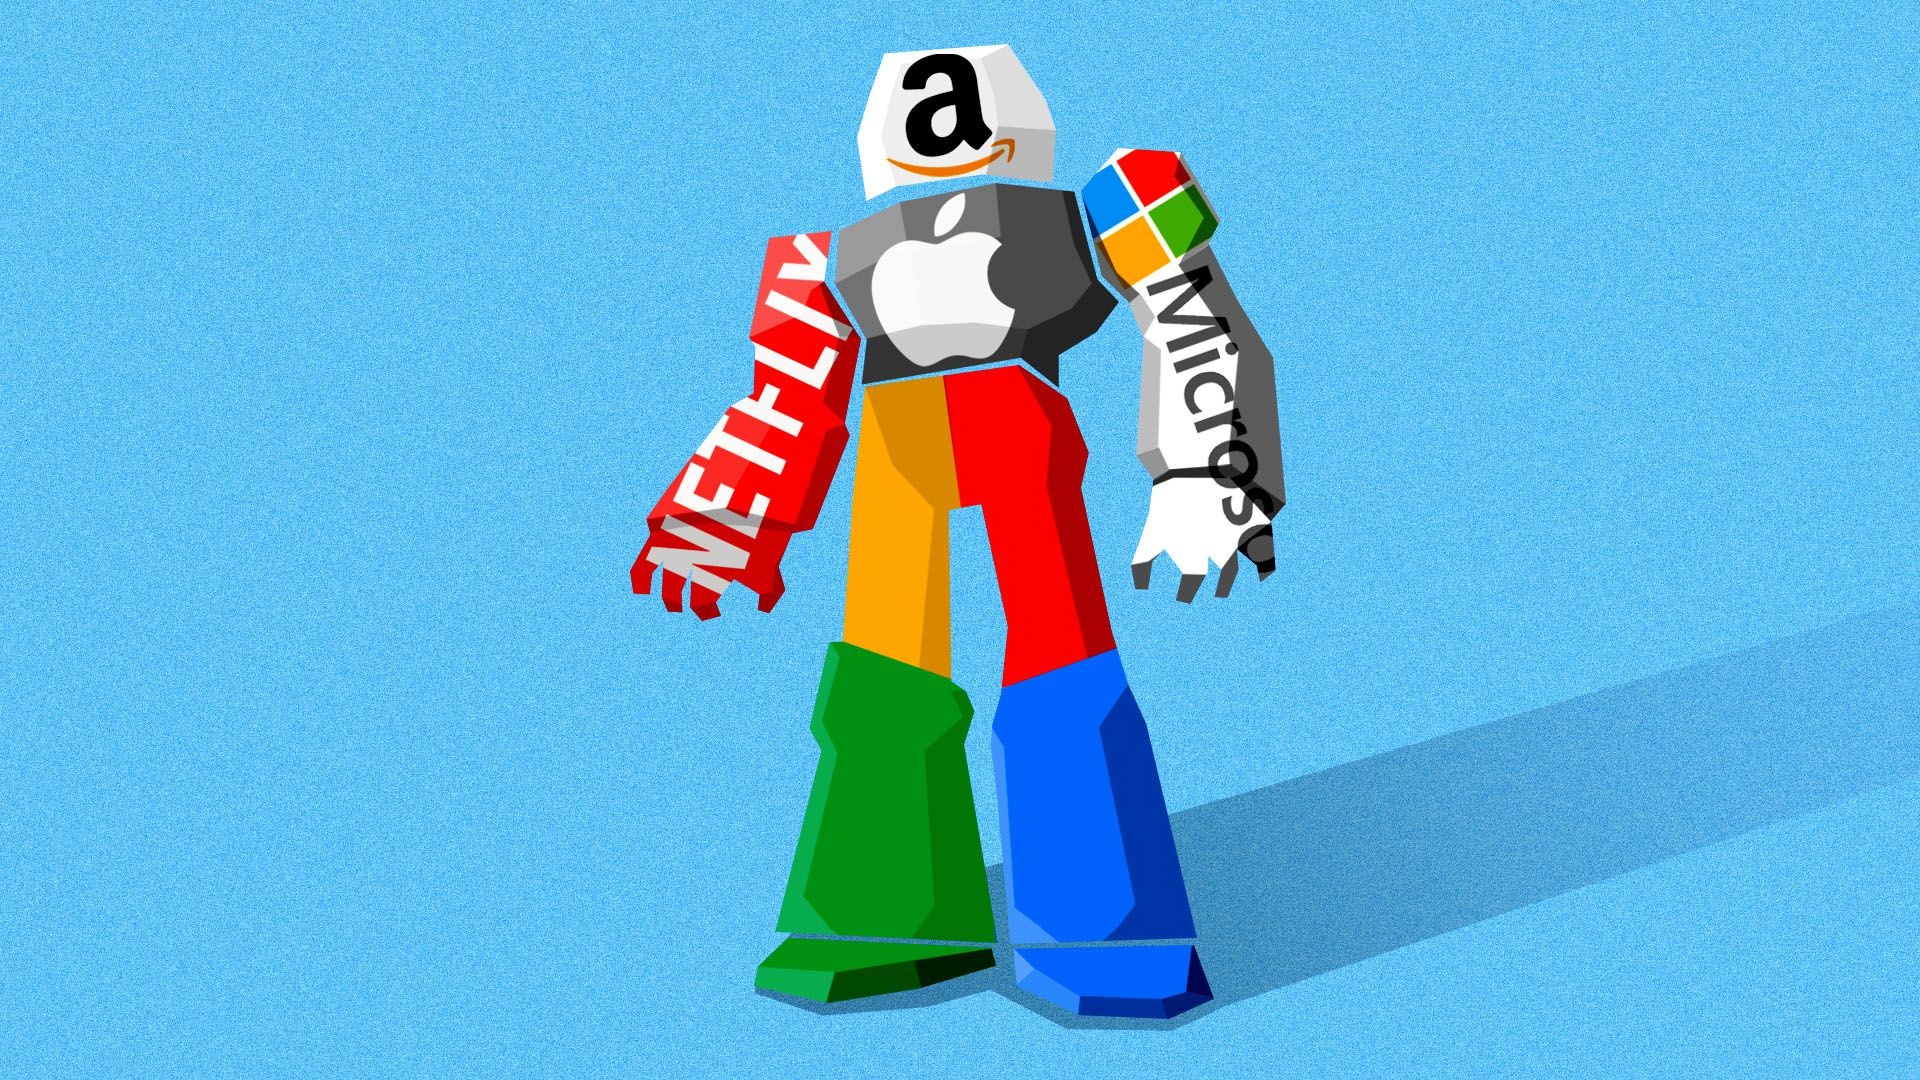 Illustration of big tech companies as a giant robot